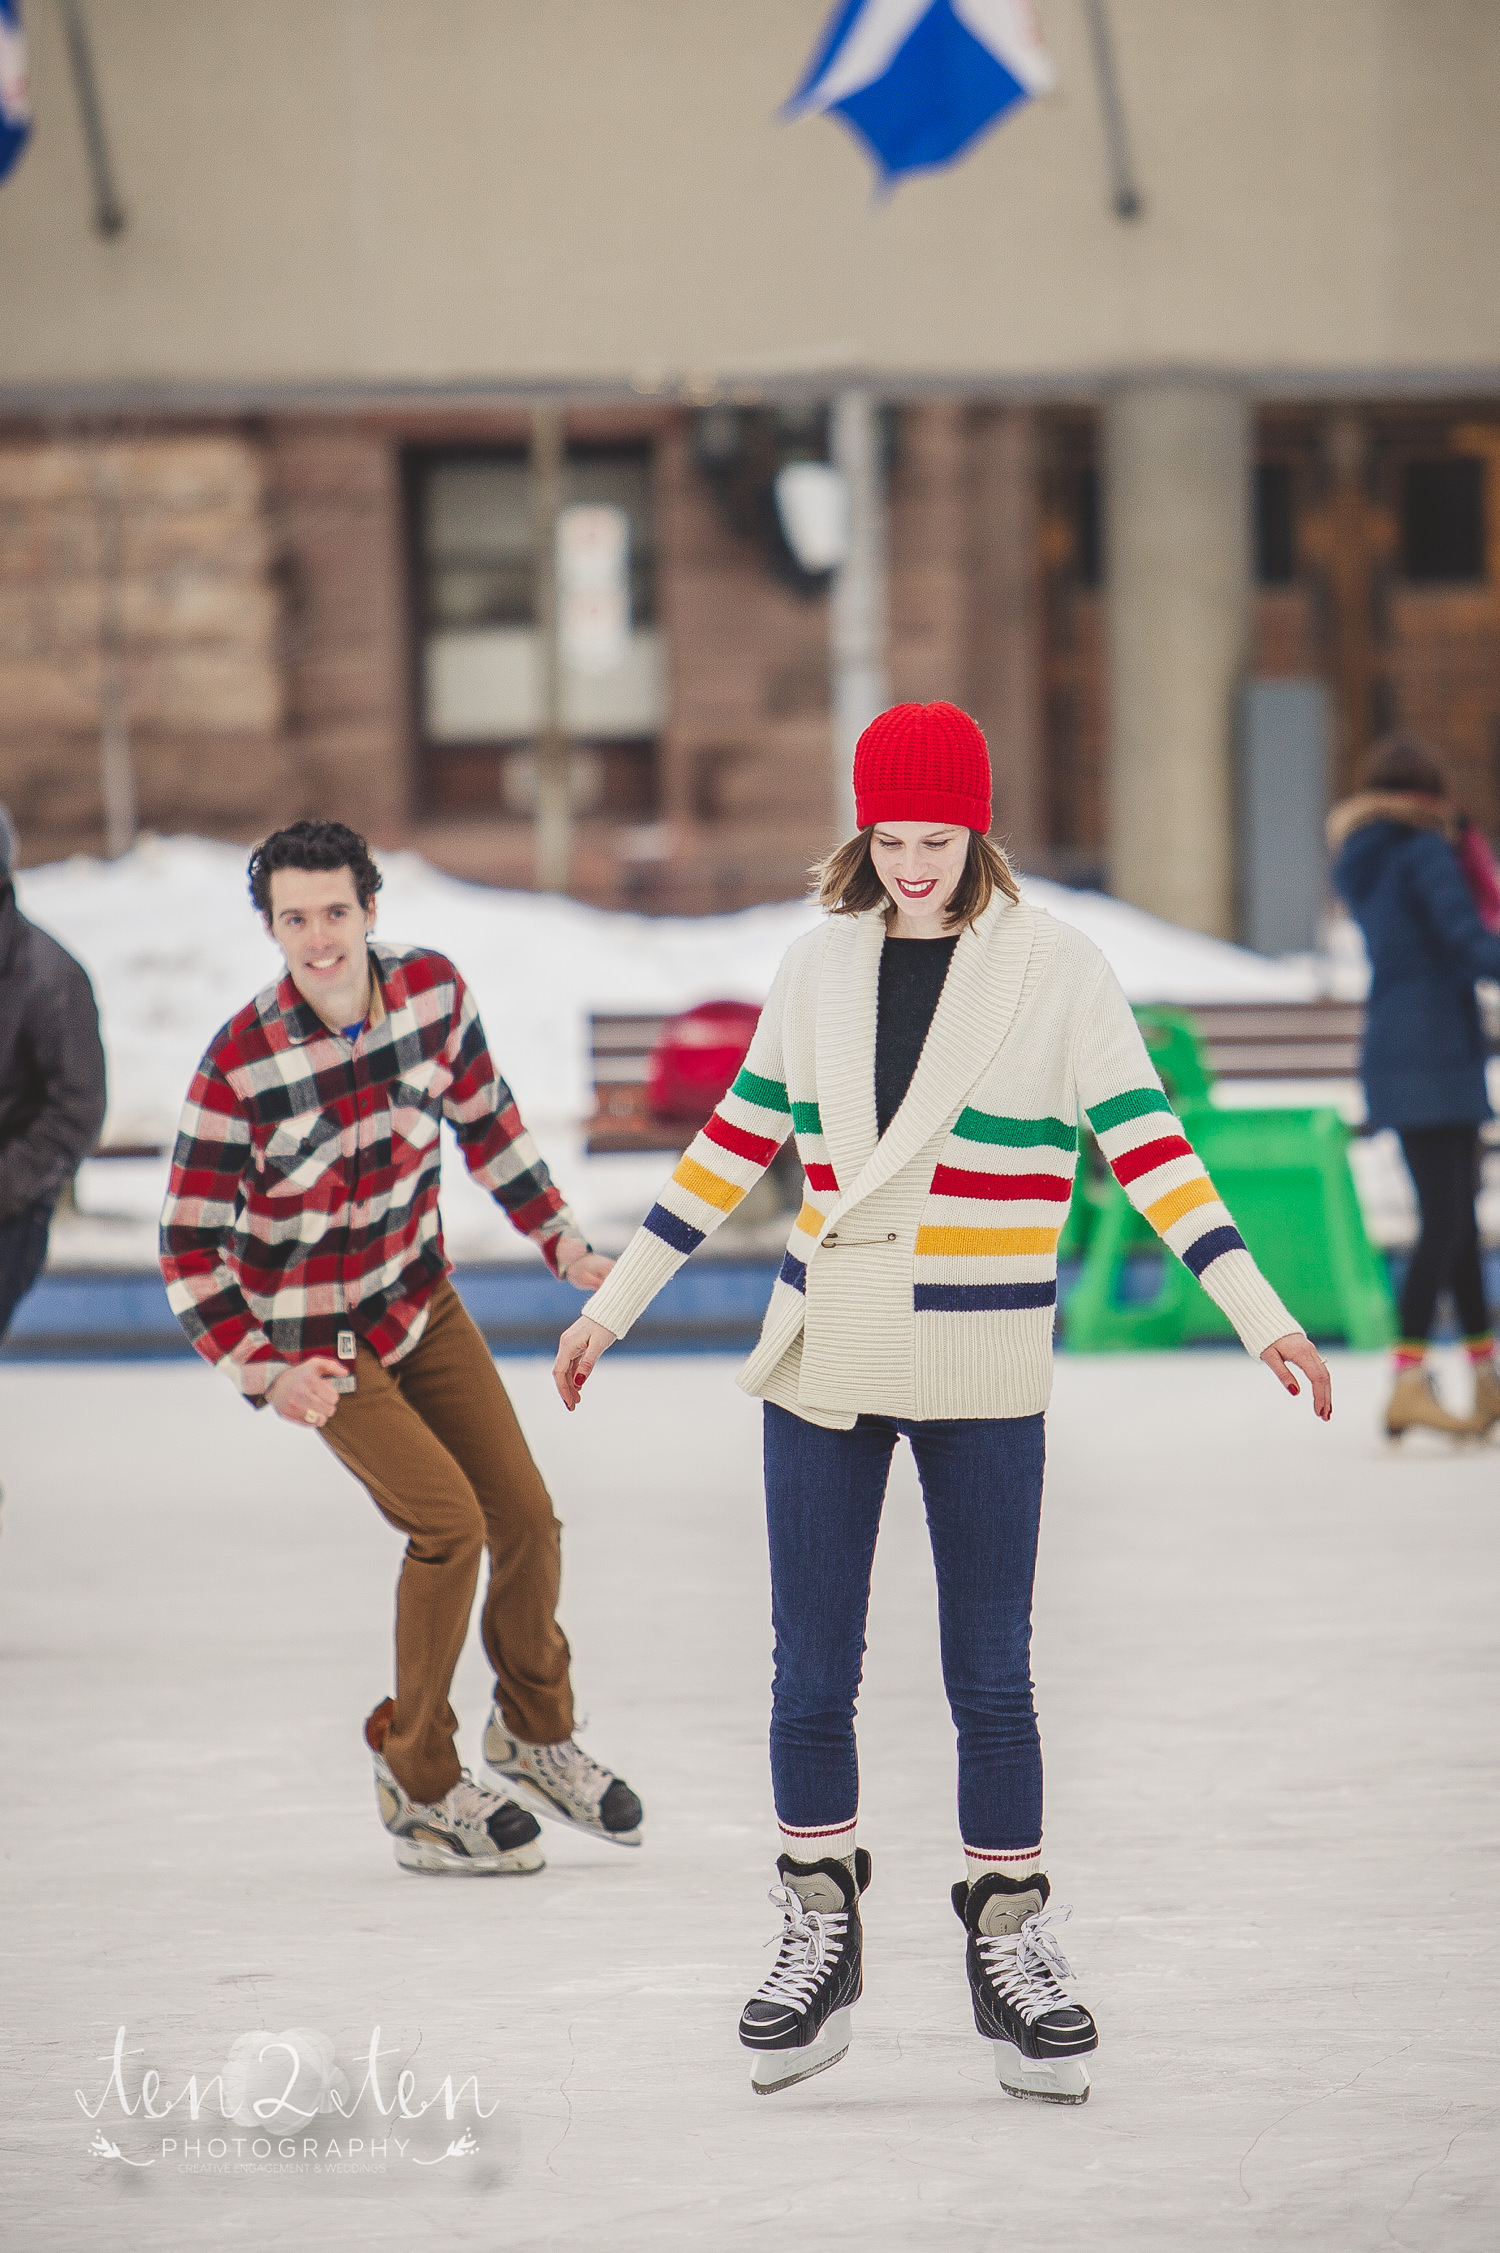 nathan phillips square engagement photos, downtown toronto engagement photos, ice skating engagement photos, skating rink engagement photos, downtown toronto engagement photos